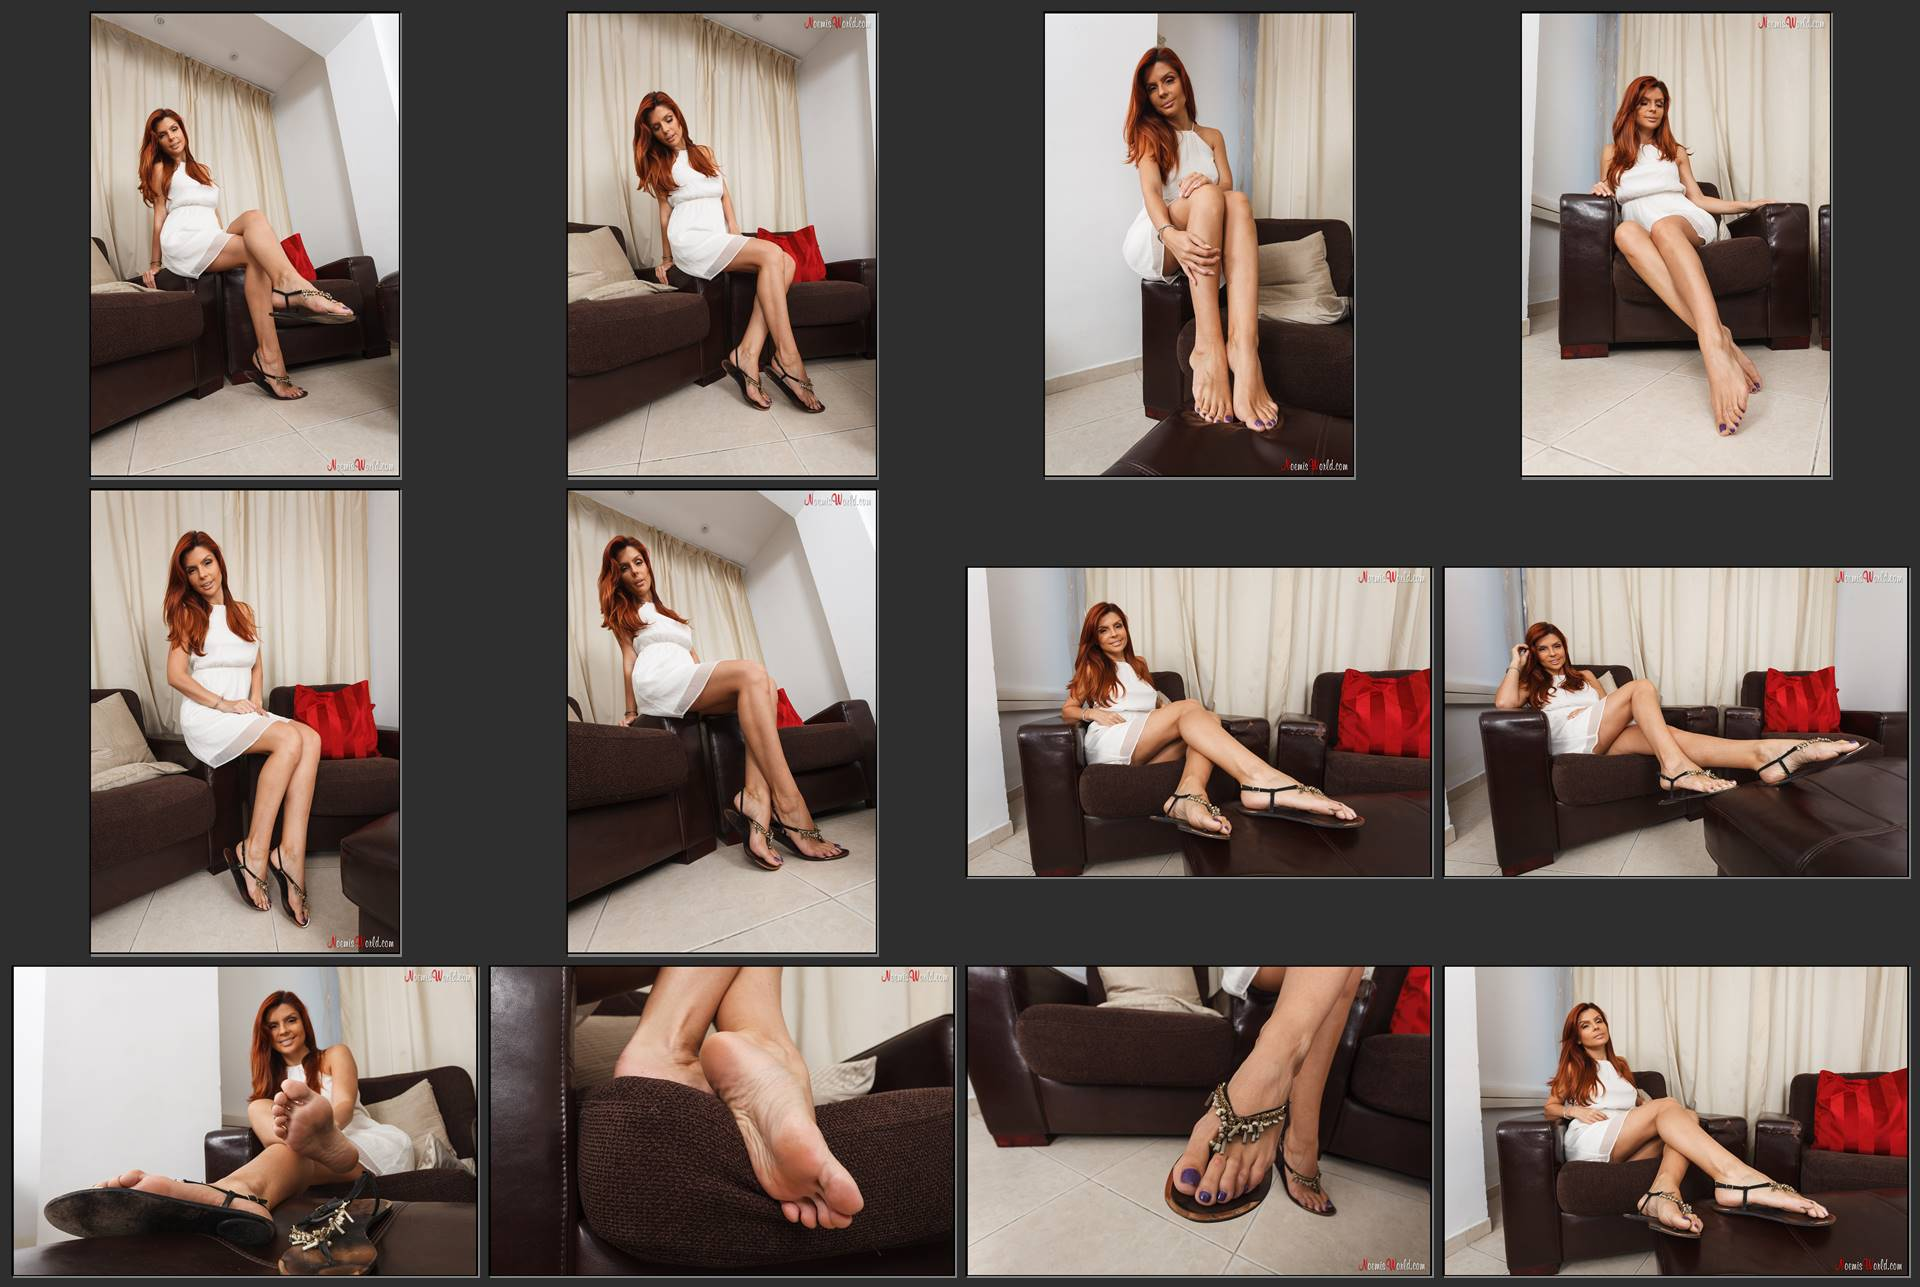 Noemi's World - Athena - This beautiful mermaid invites you to lick her soles - Femdom Pictures